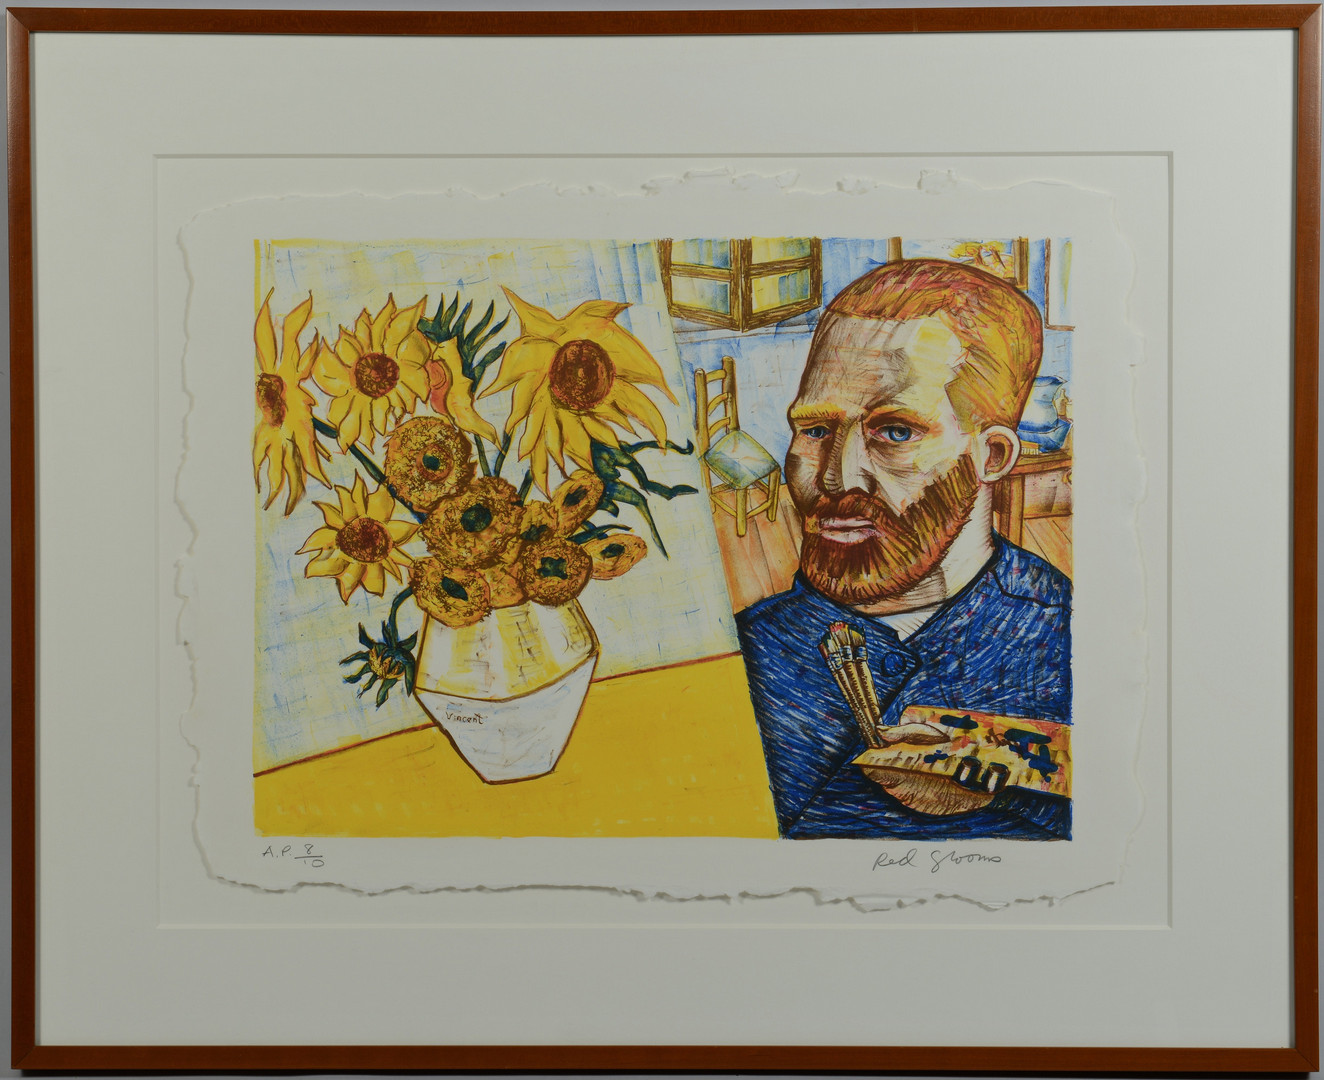 Lot 194: Red Grooms signed litho, Van Gogh